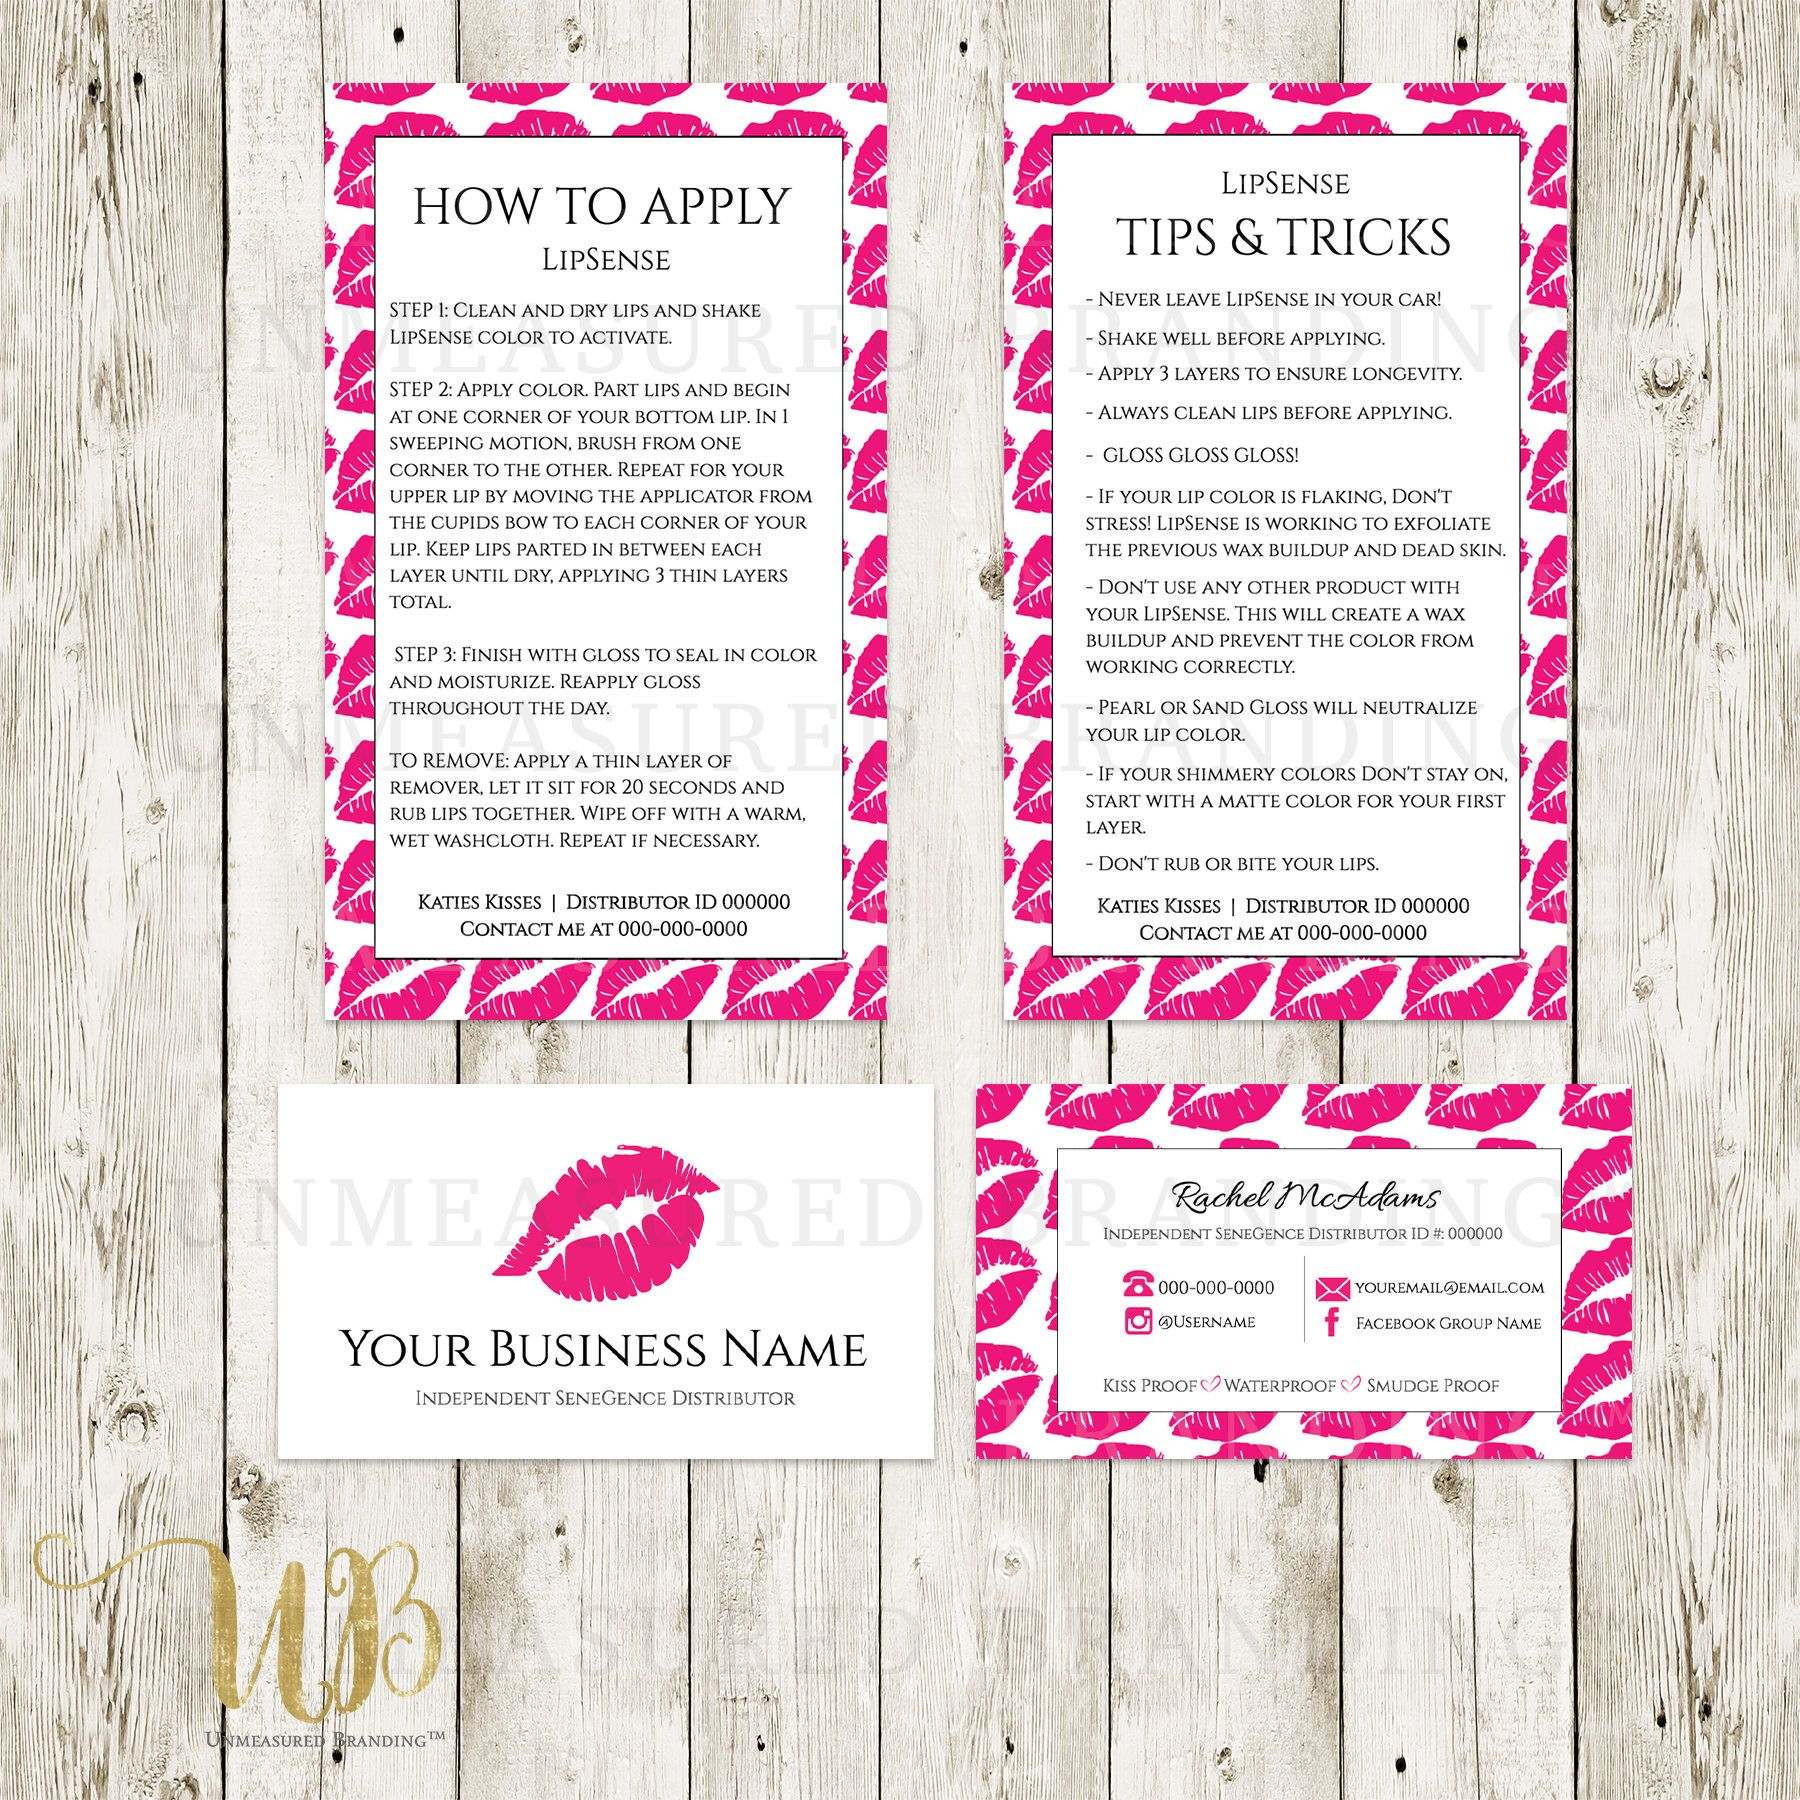 Hot Pink|Lip Pattern|White|LipSense Business Cards|LipSense|LipSense ...